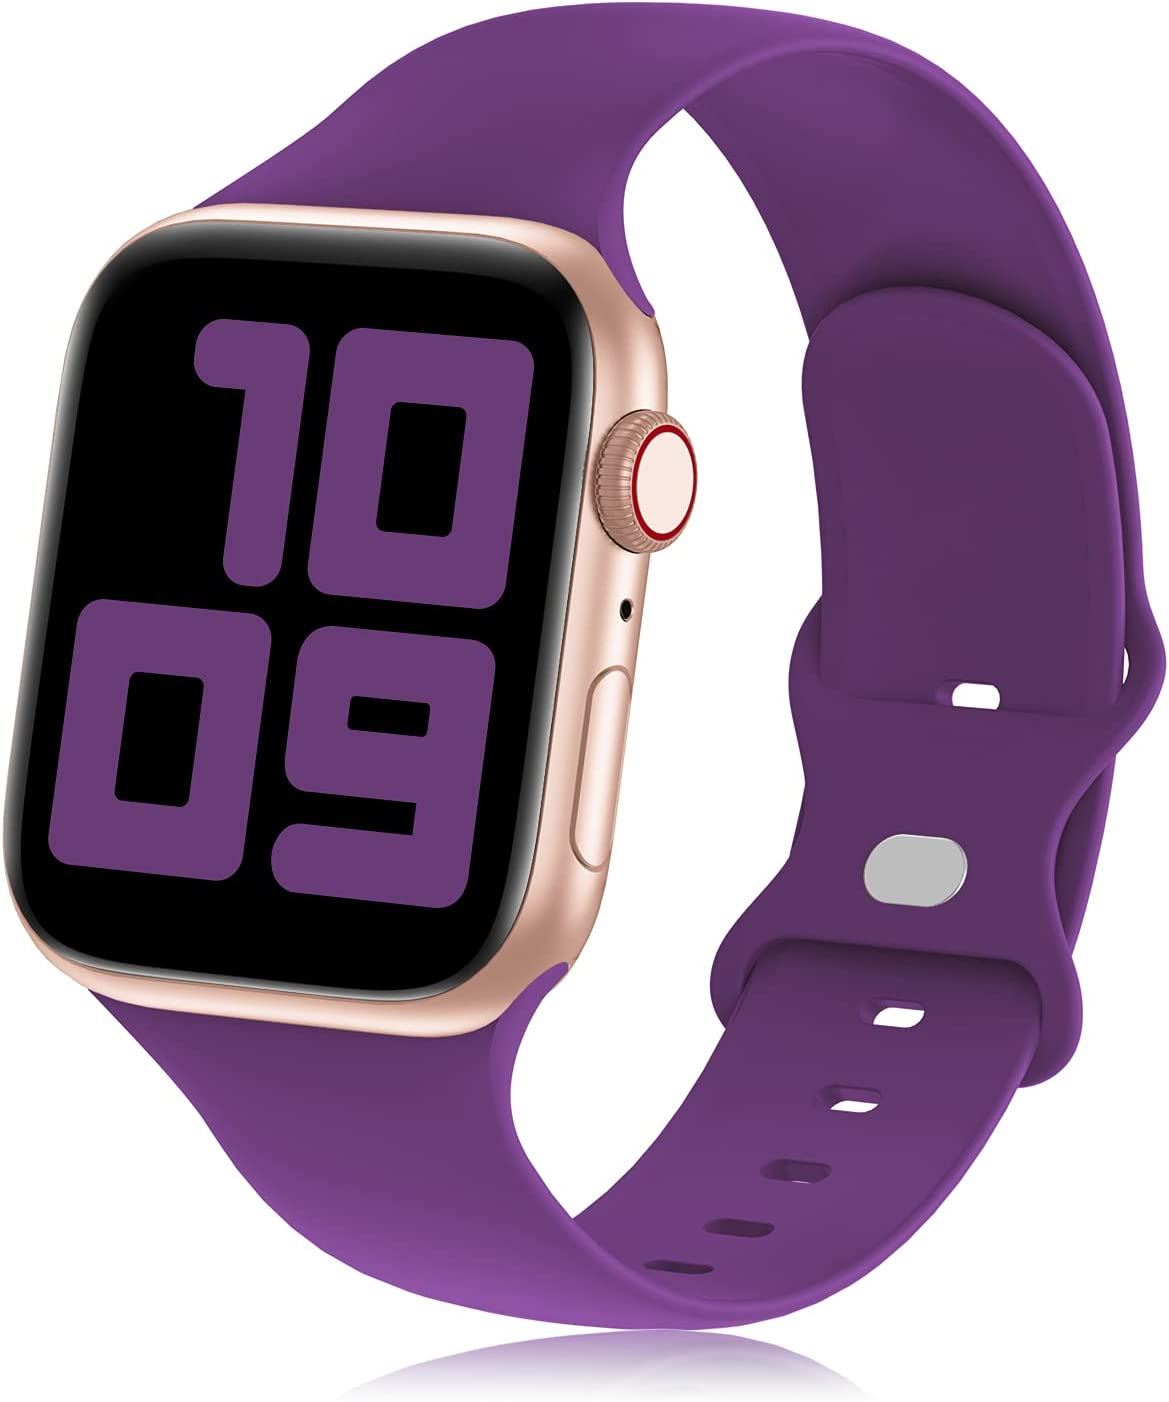 Hehighti Compatible with Apple Watch Bands 38mm 40mm 42mm 44mm, Soft Silicone Sport Wristbands Replacement Strap for iwatch bands watch SE/Series 6/5/4/3/2/1,Deep purple